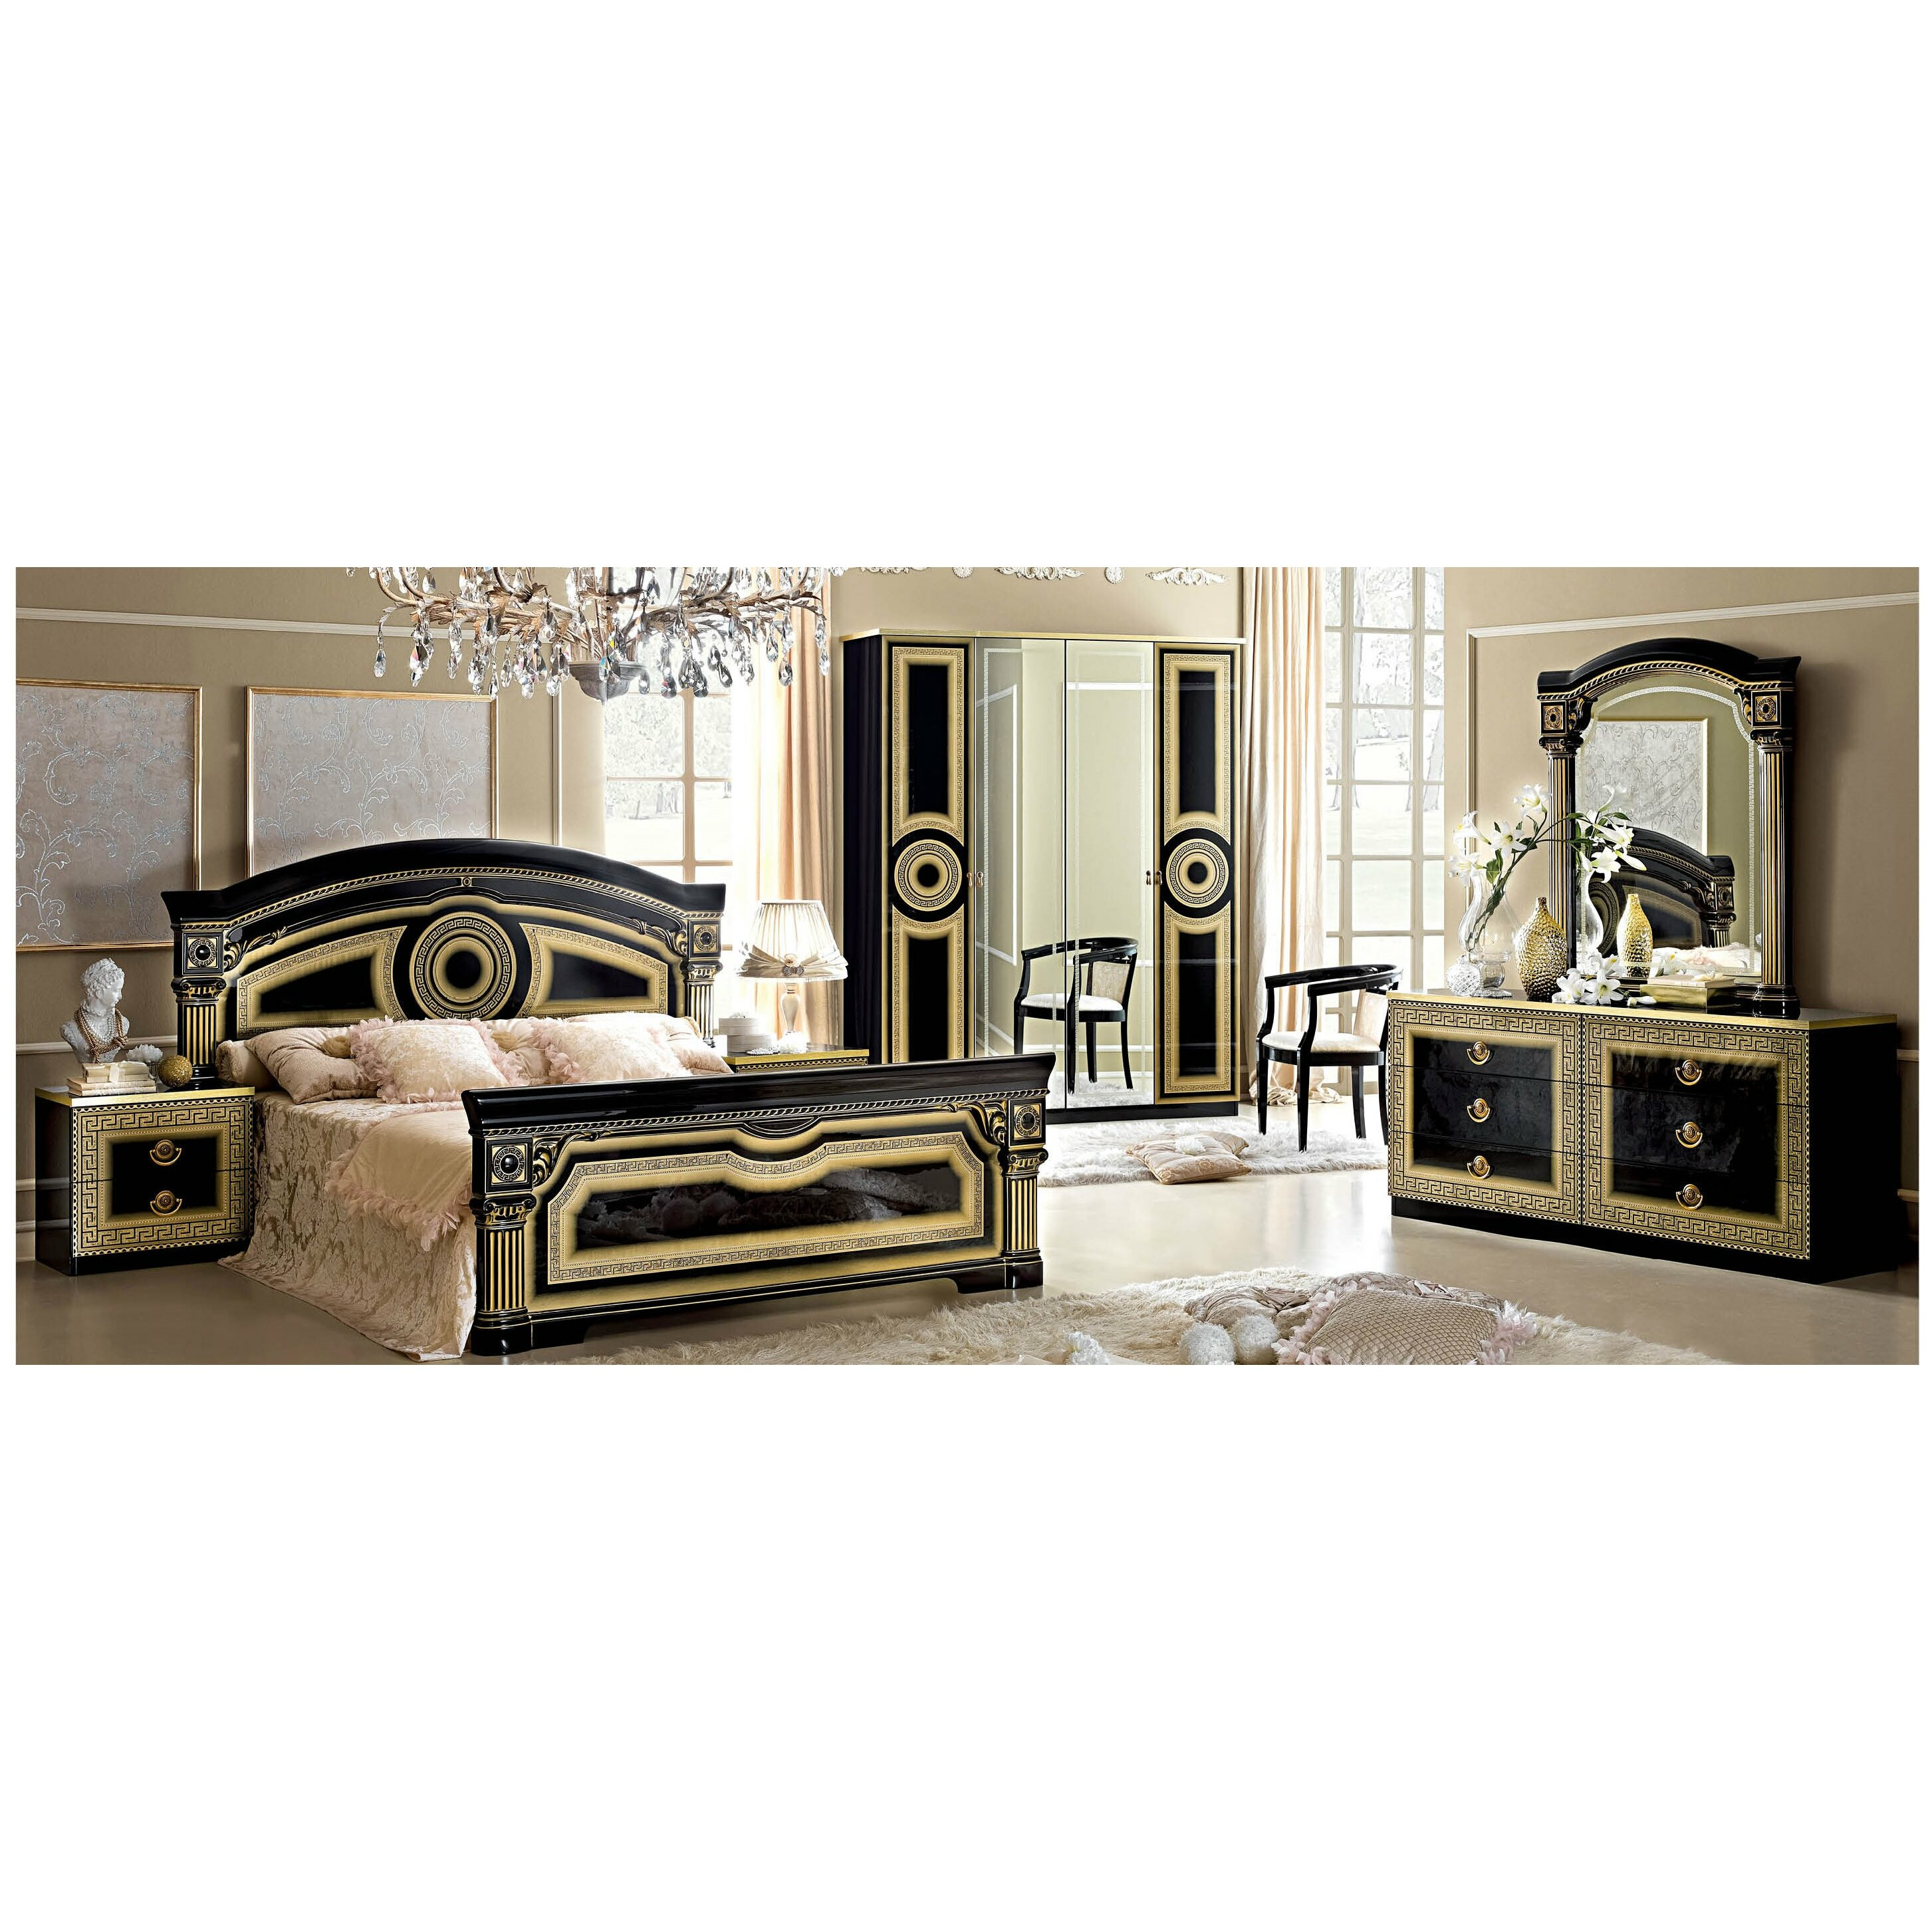 Nocidesign panel 3 piece bedroom set wayfair for 3 bedroom set